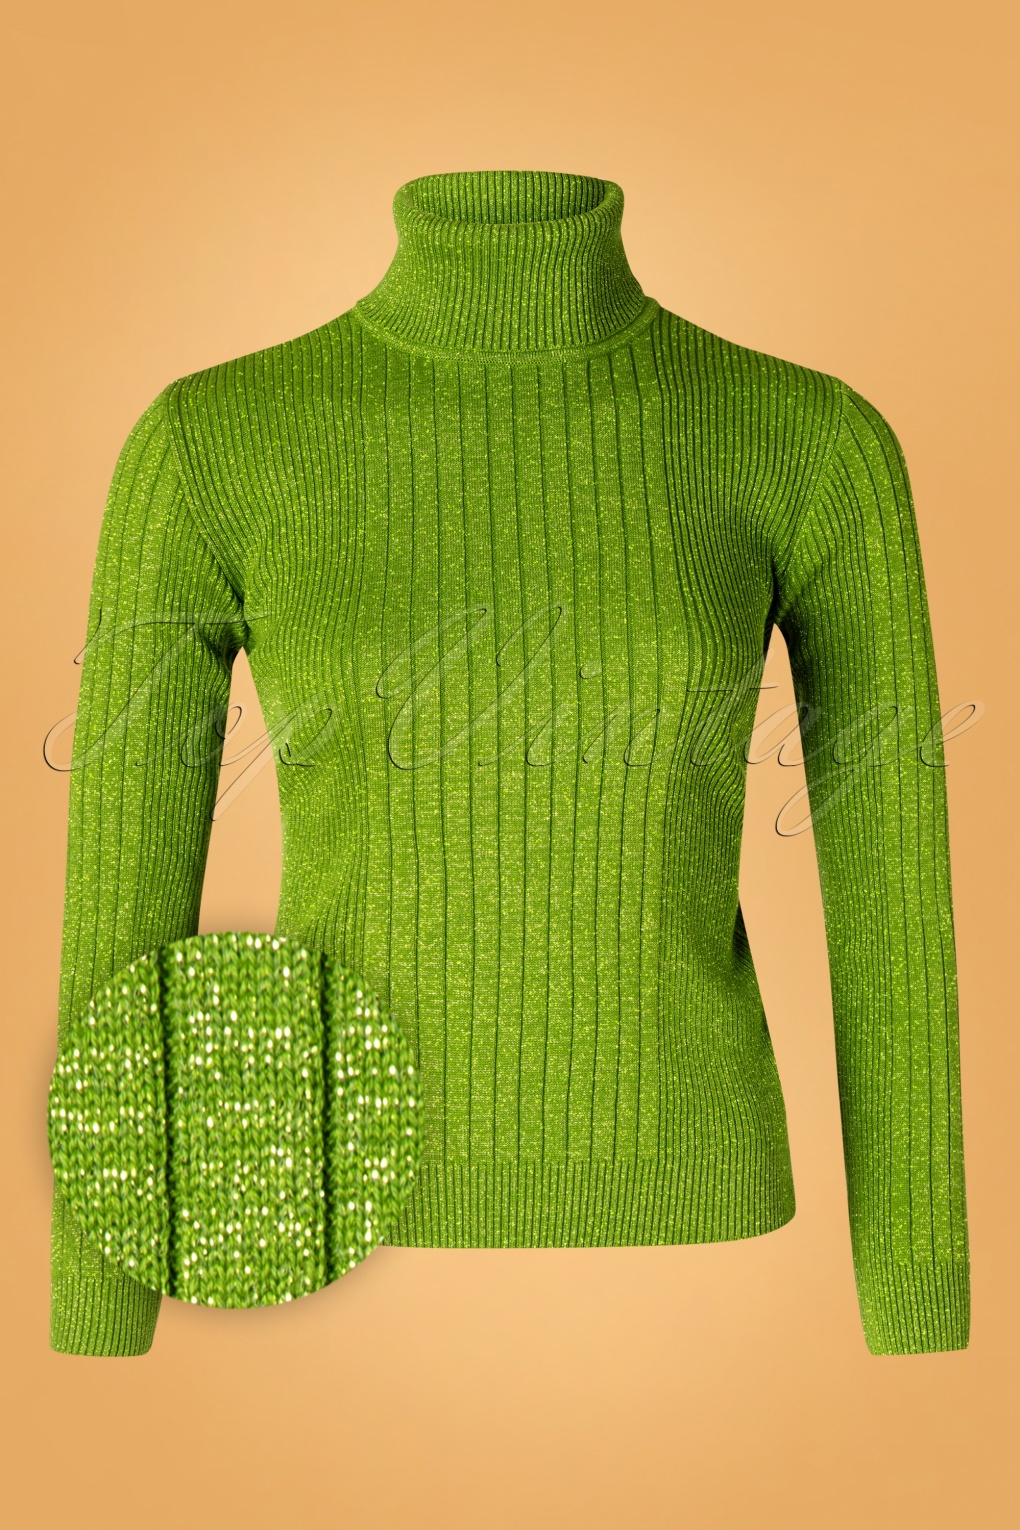 1960s Style Dresses, Clothing, Shoes UK 60s Lets Roll Knit Jumper in Green Lurex £71.19 AT vintagedancer.com